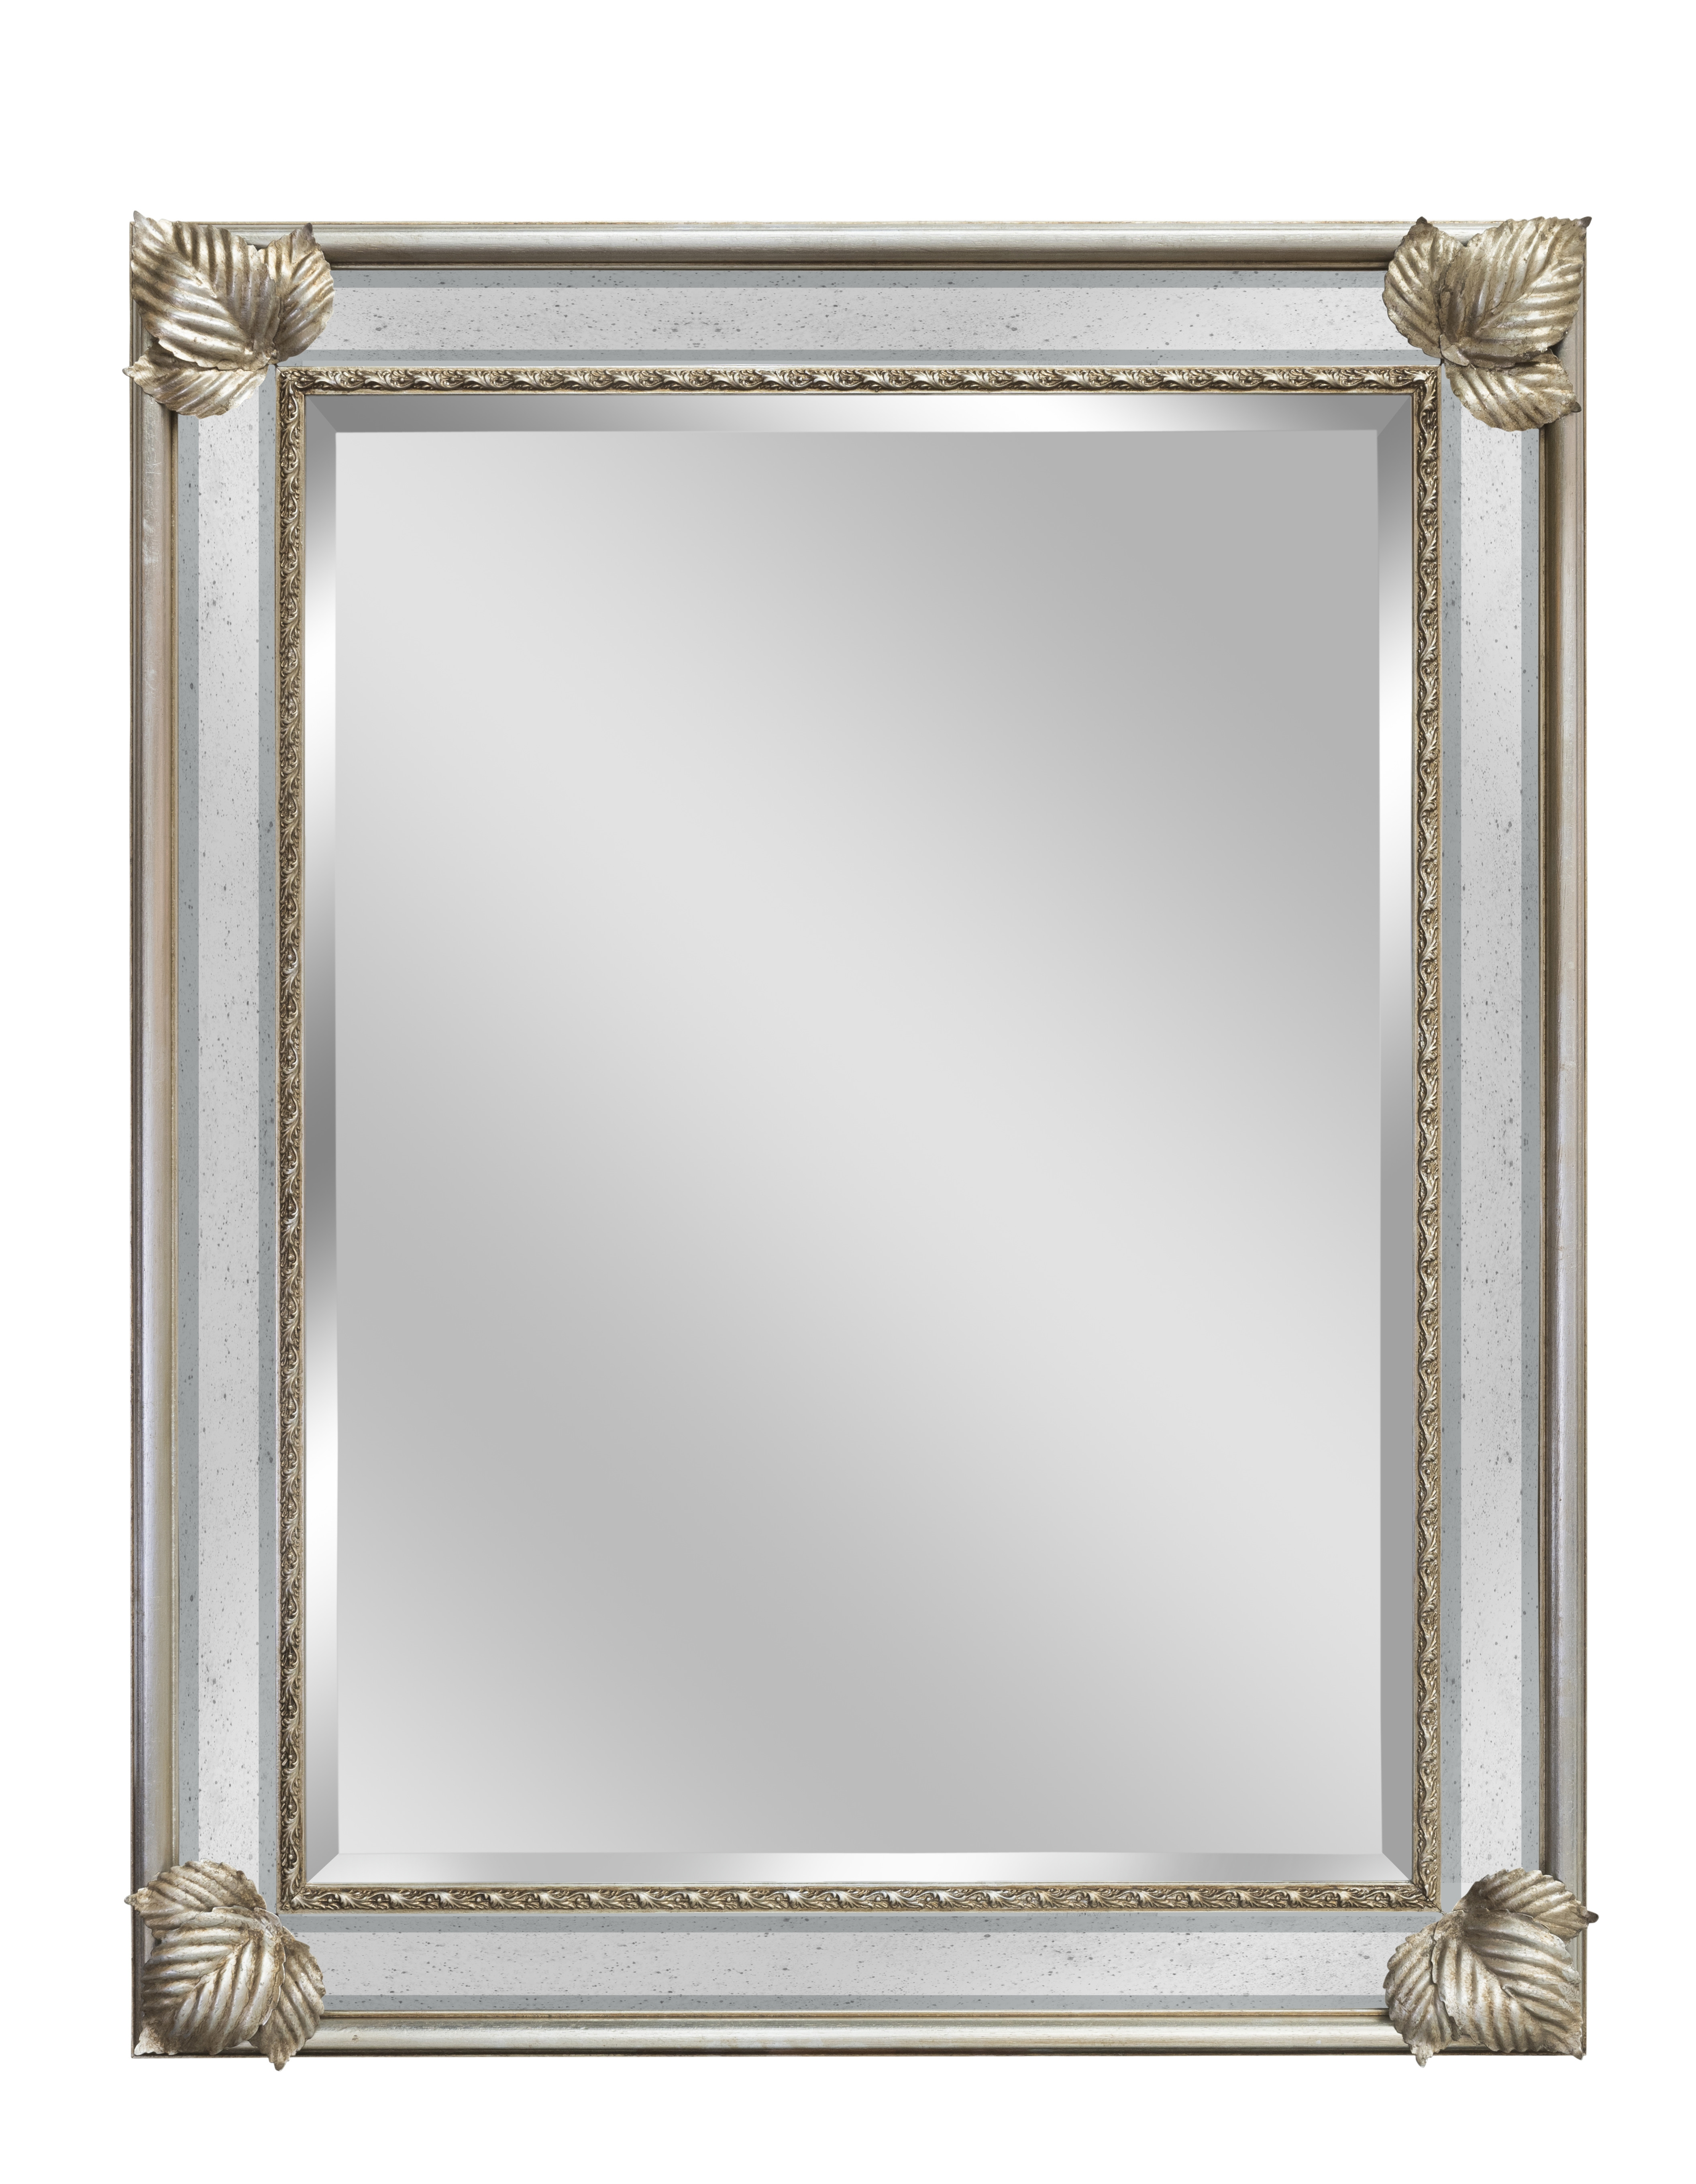 Grey Cushion Mirror Silver Mirrors For Sale Panfili Mirrors Pertaining To Mirrors For Sale (Image 8 of 15)